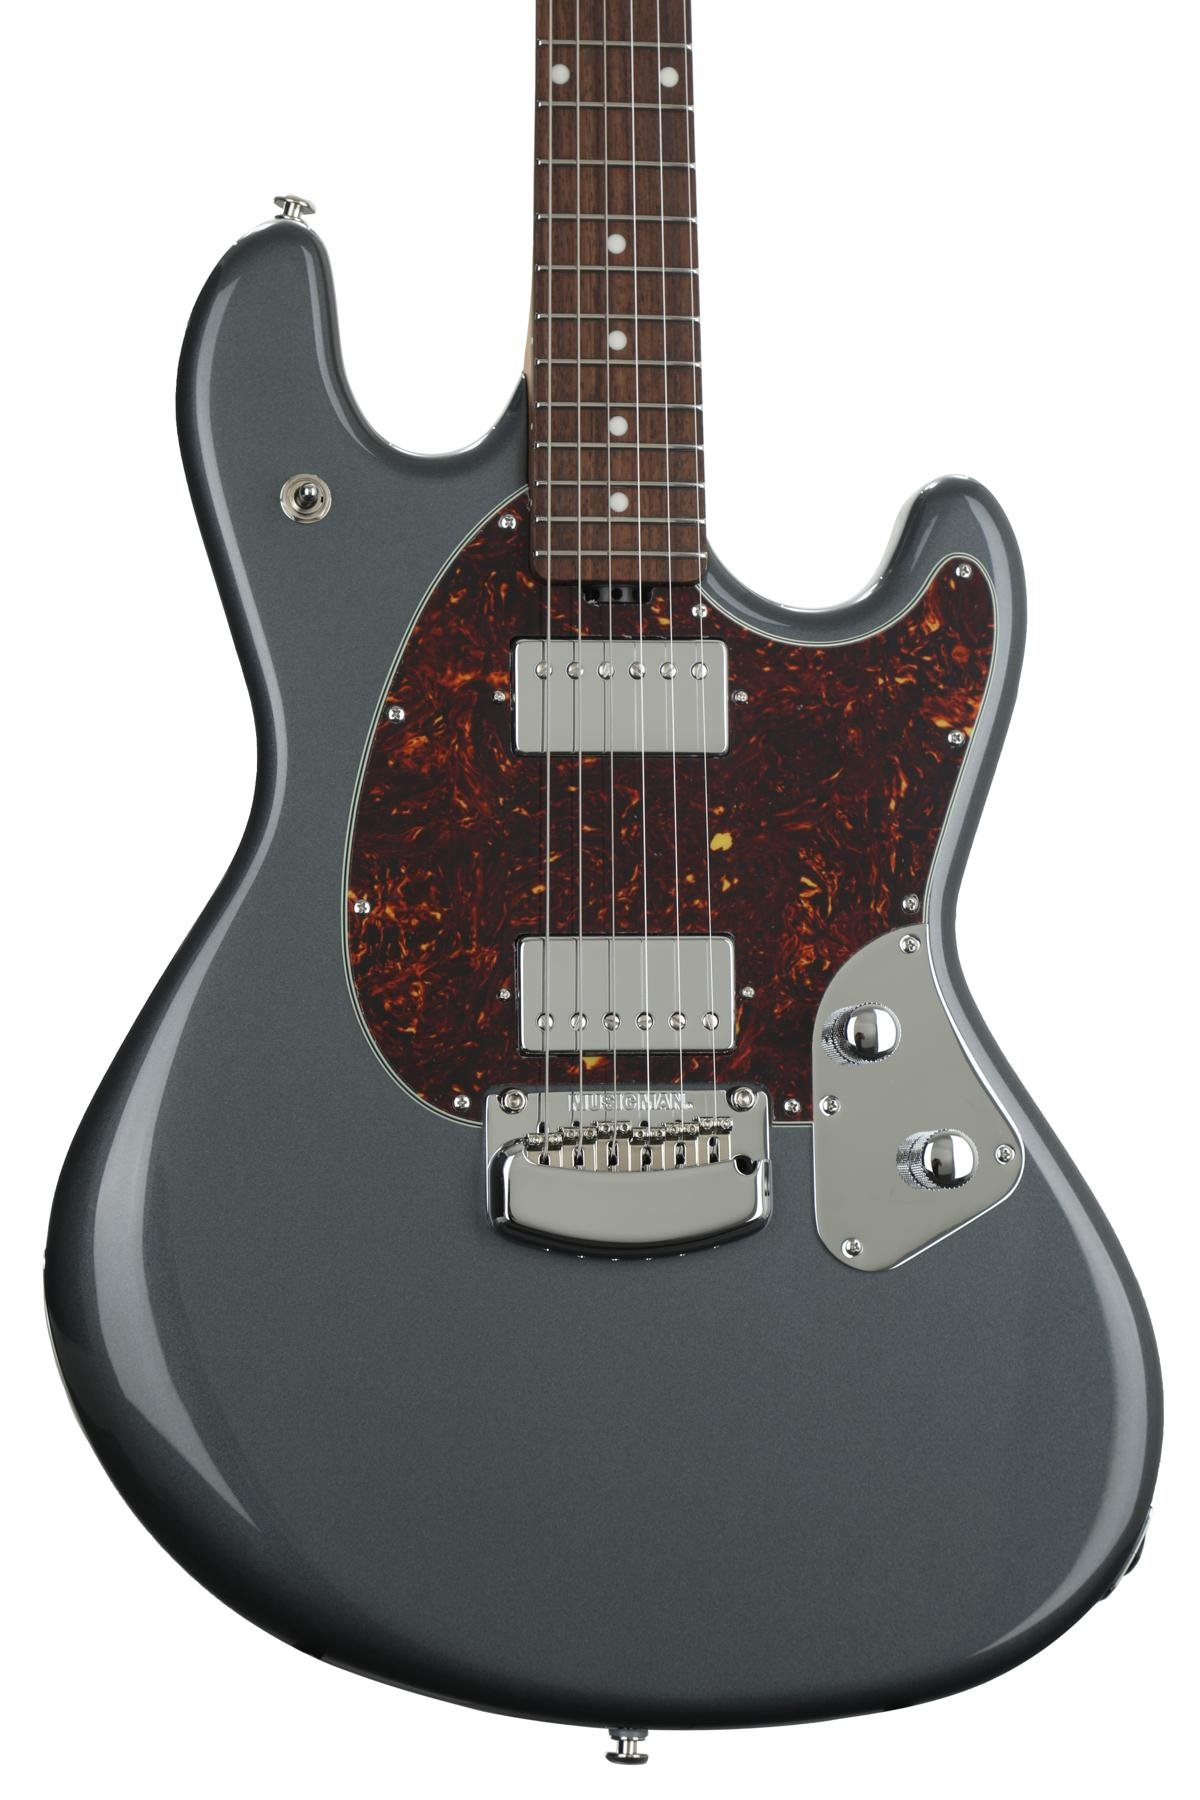 Ernie Ball Music Man Stingray Rs Charcoal Frost Sweetwater